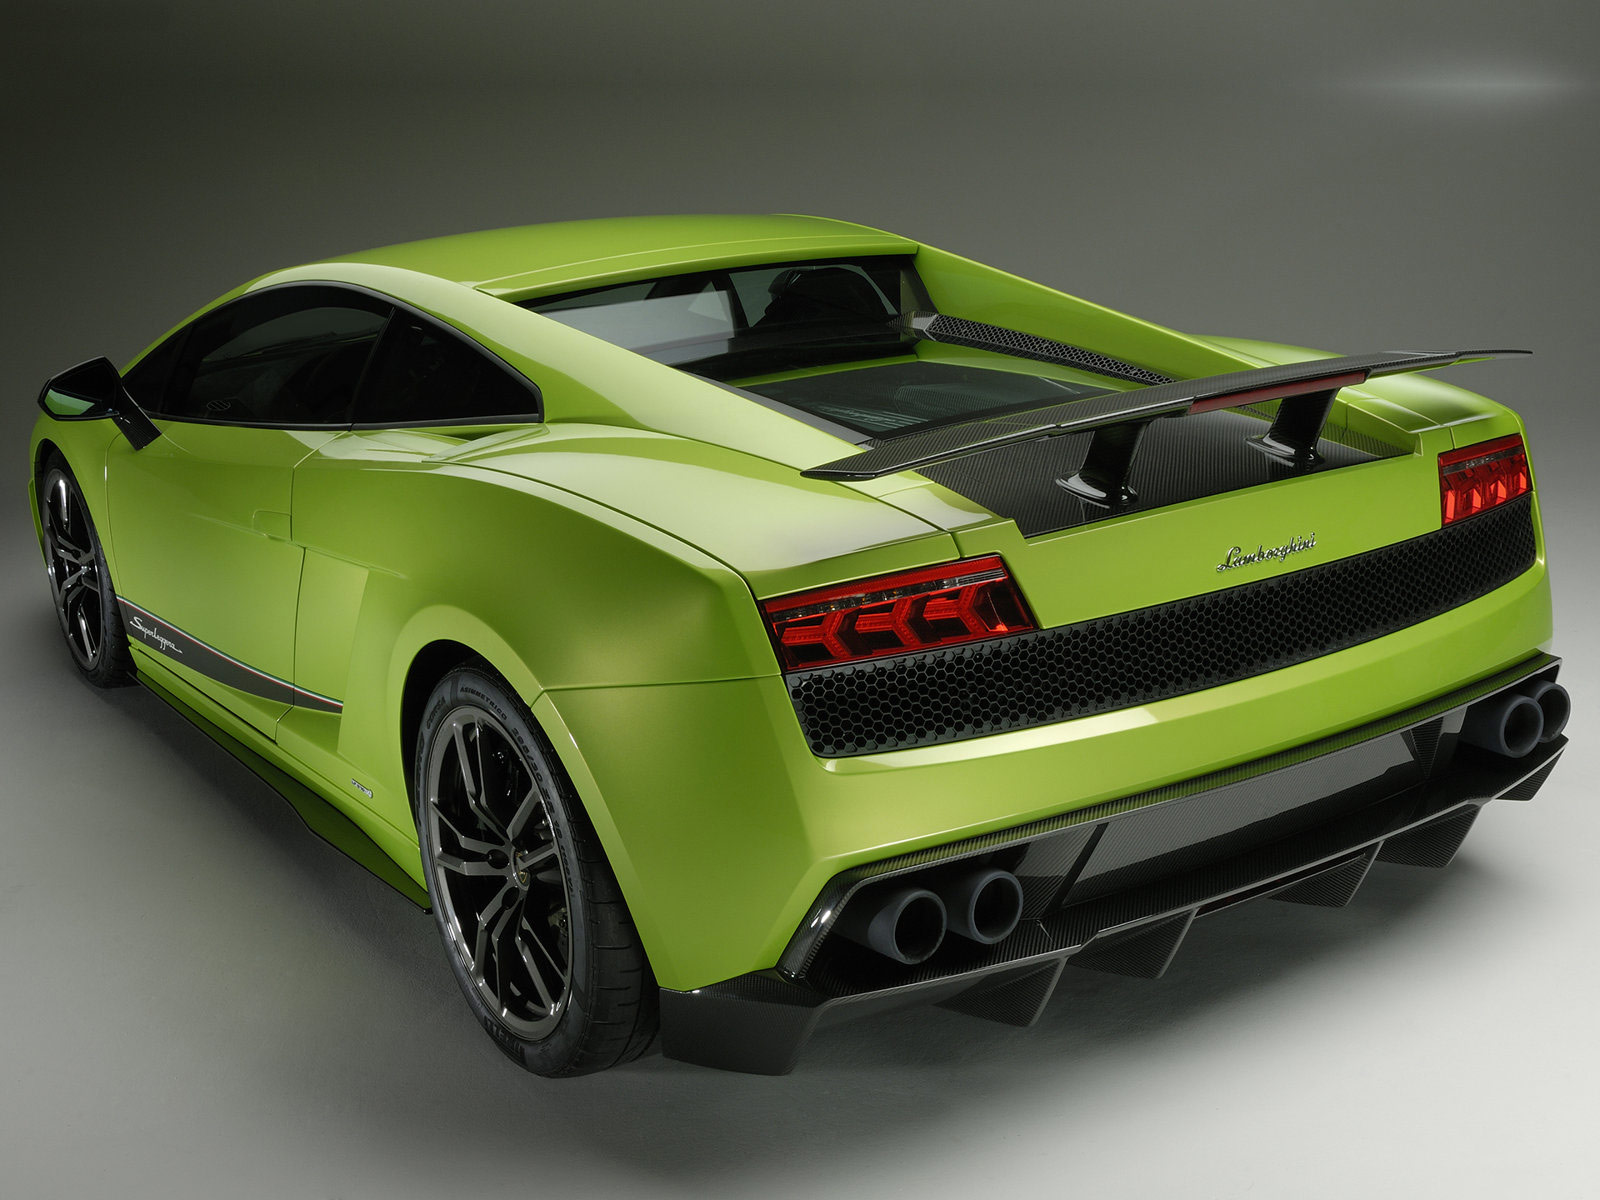 2011 LAMBORGHINI Gallardo LP570-4 Superleggera Pictures